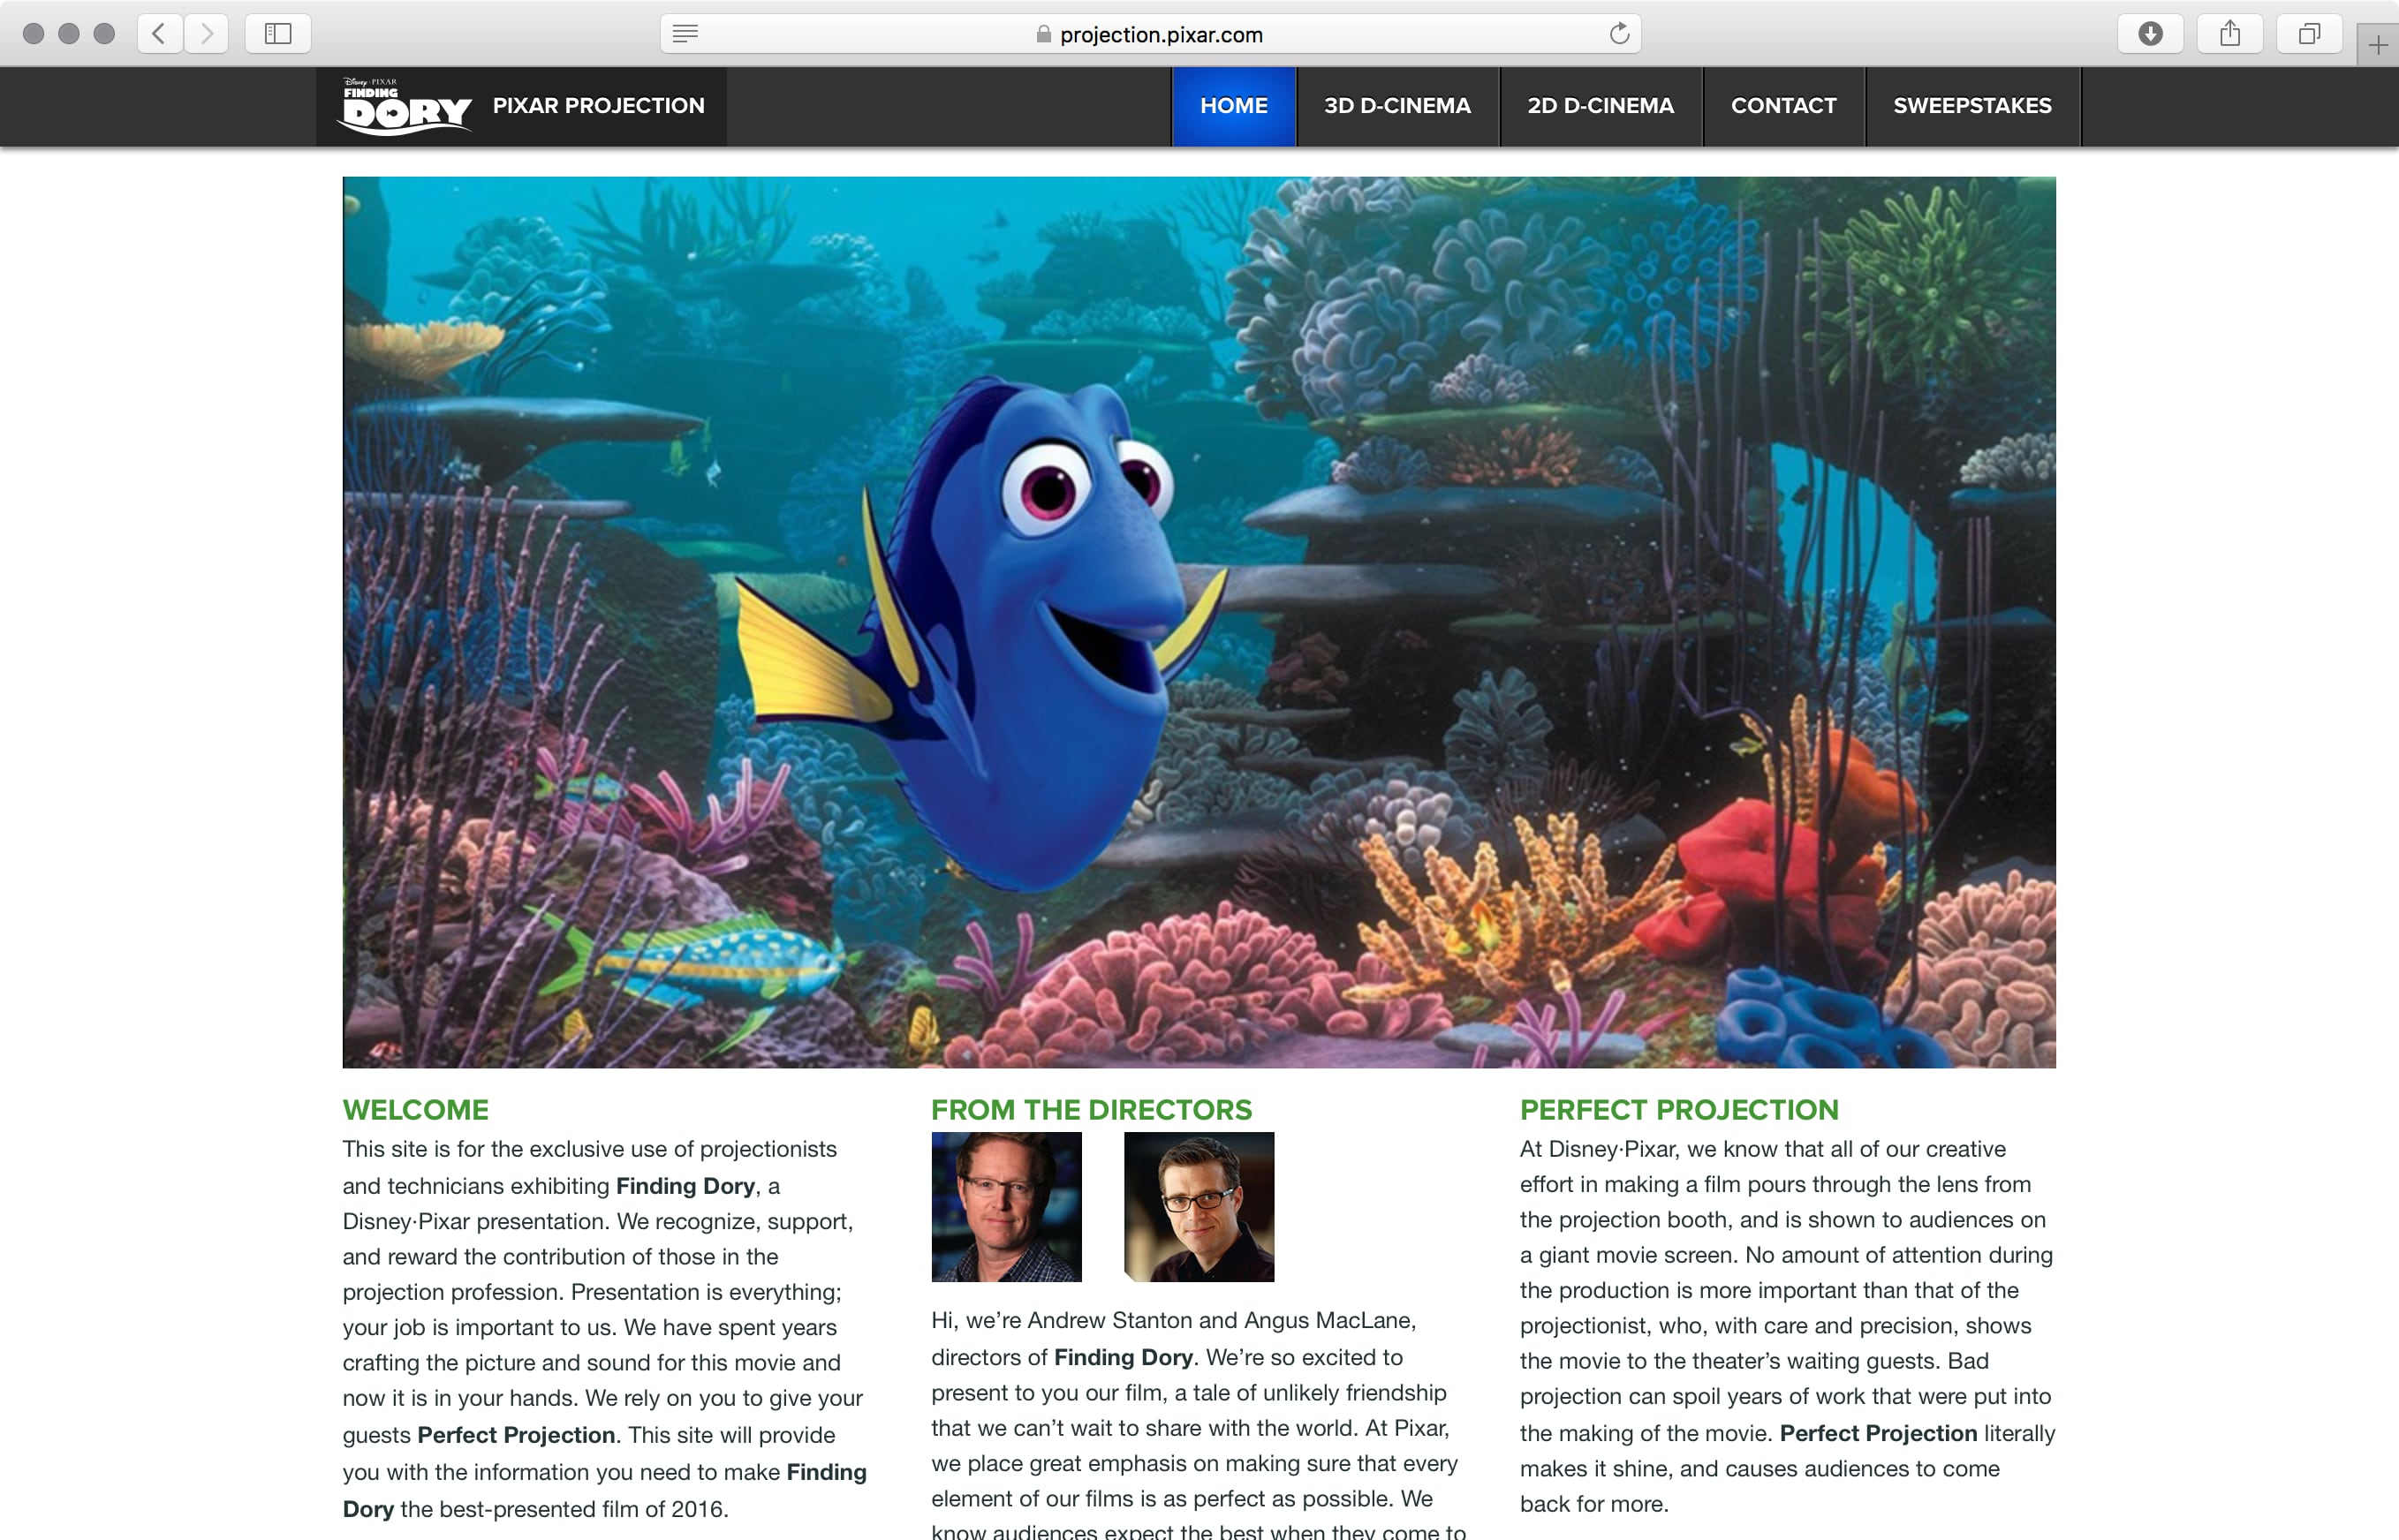 Pixar Projection site home page